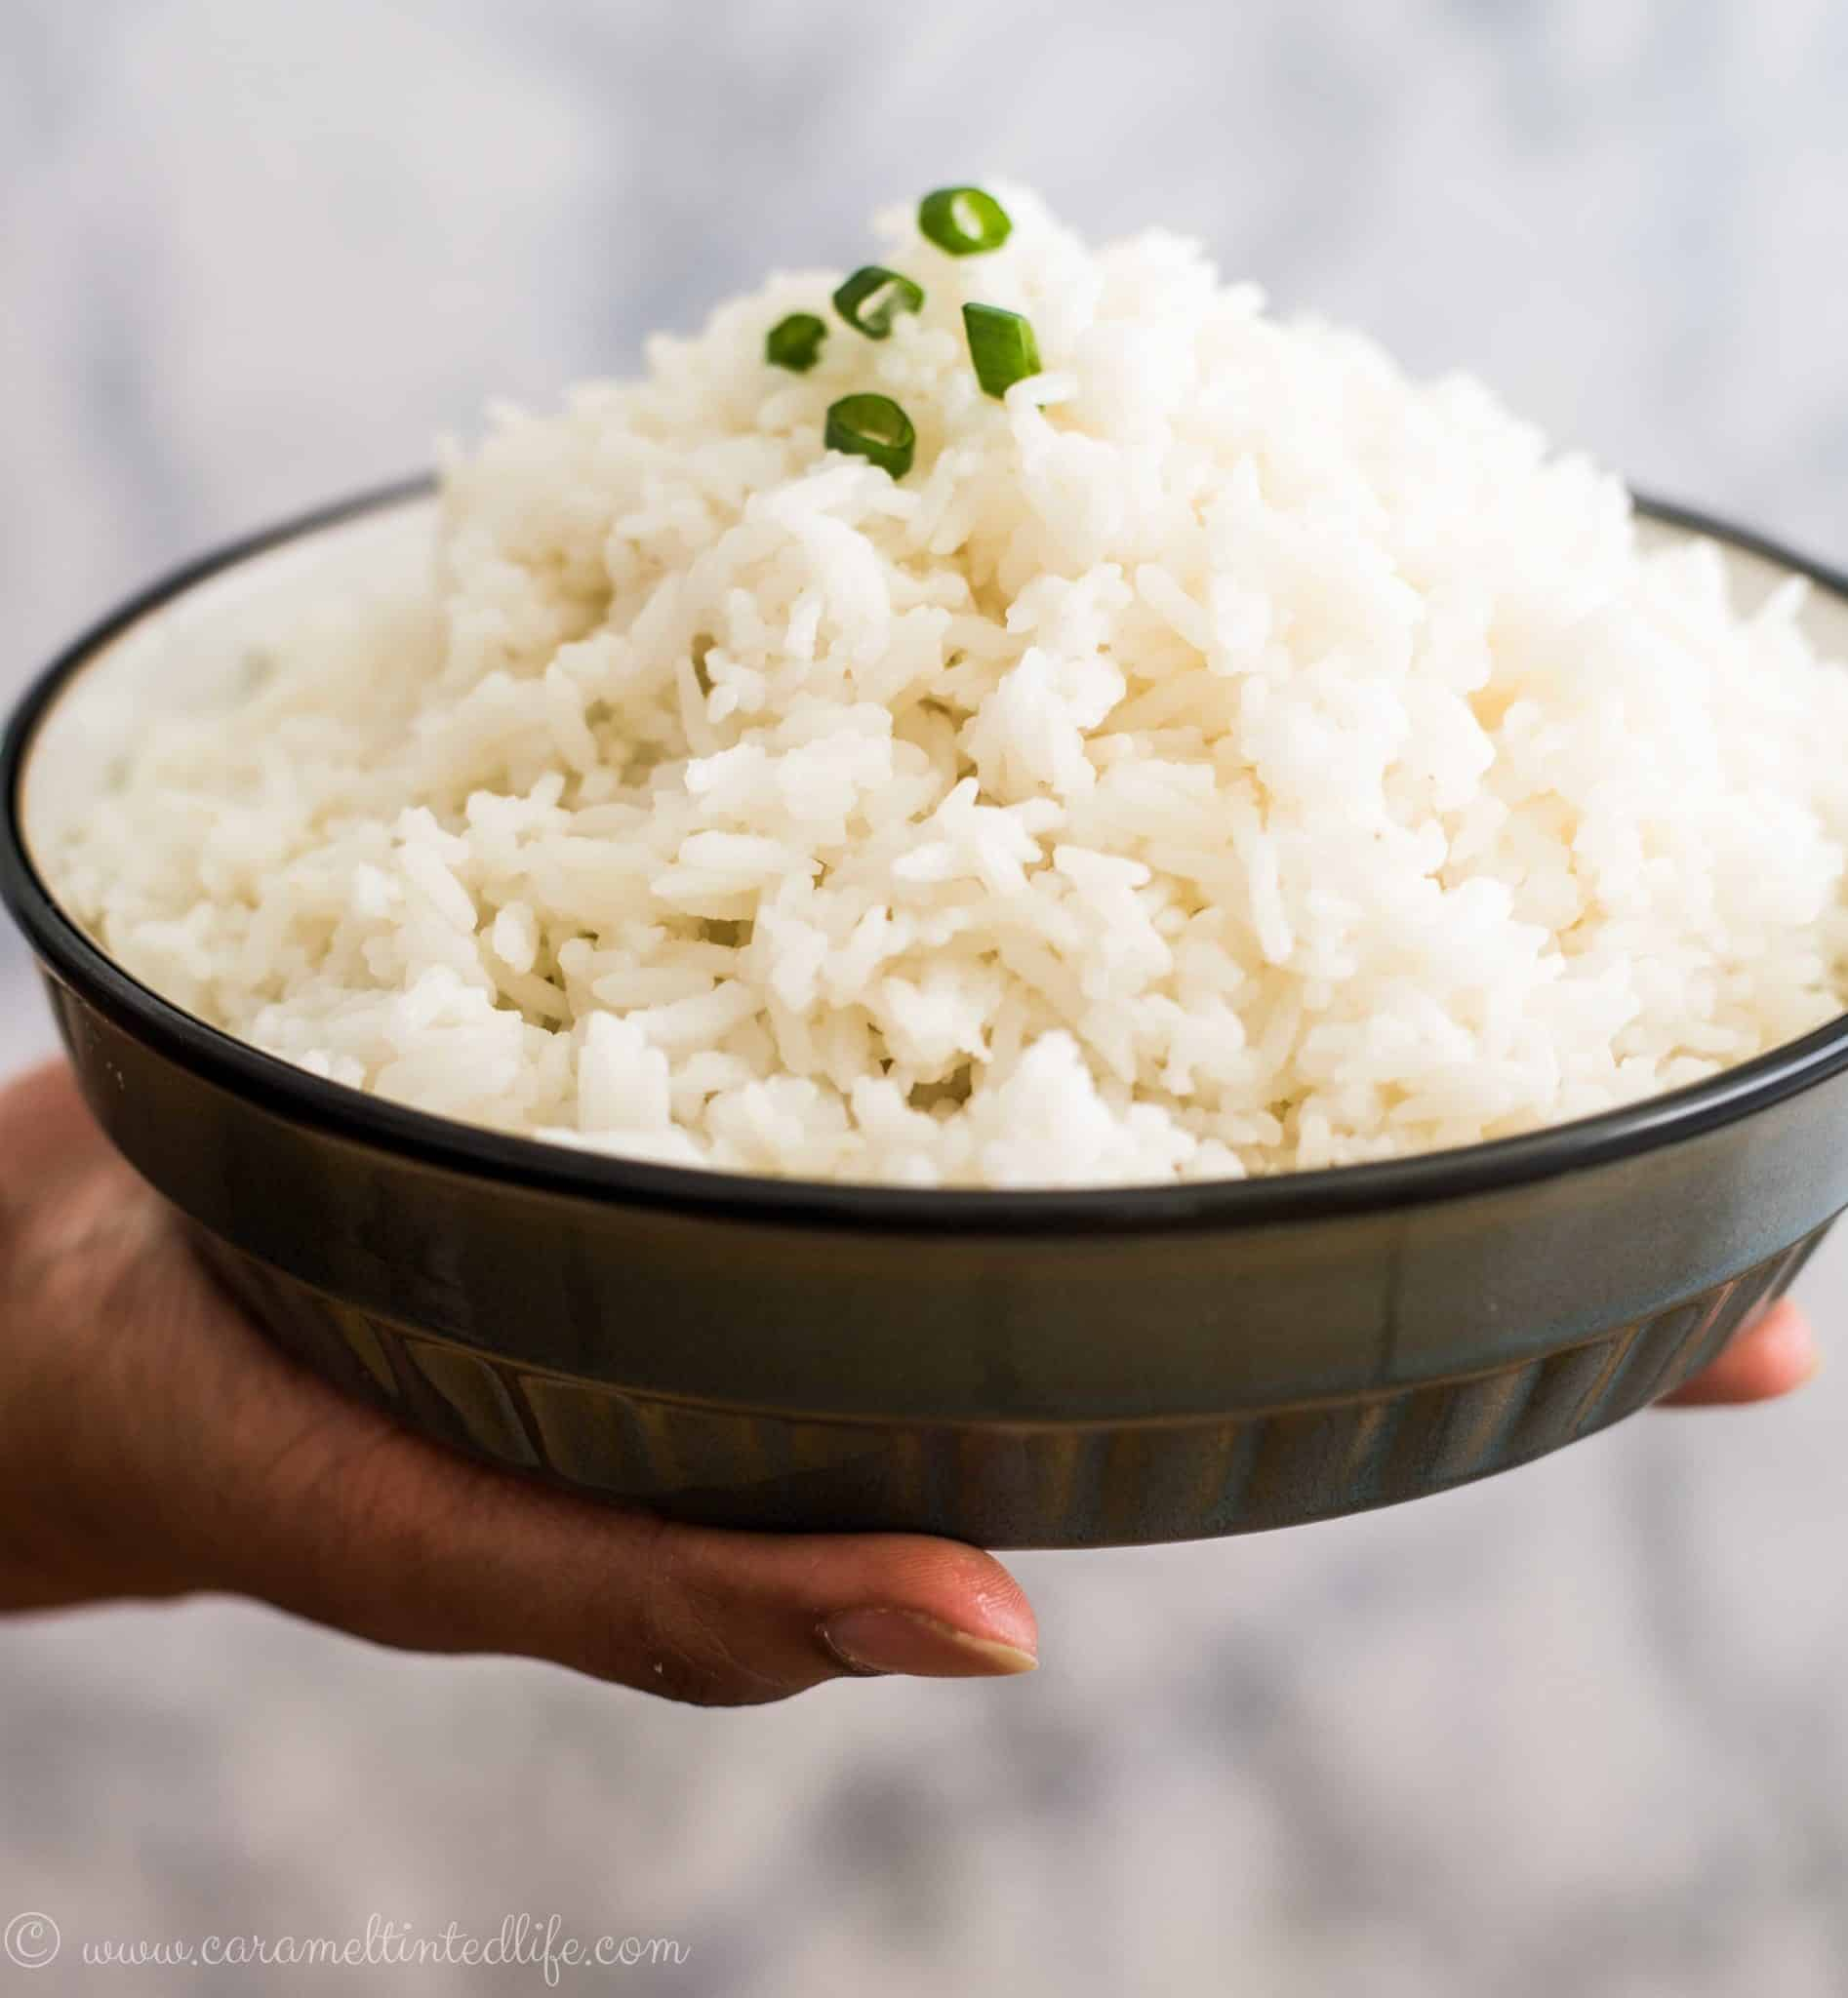 Jasmine rice in a plate